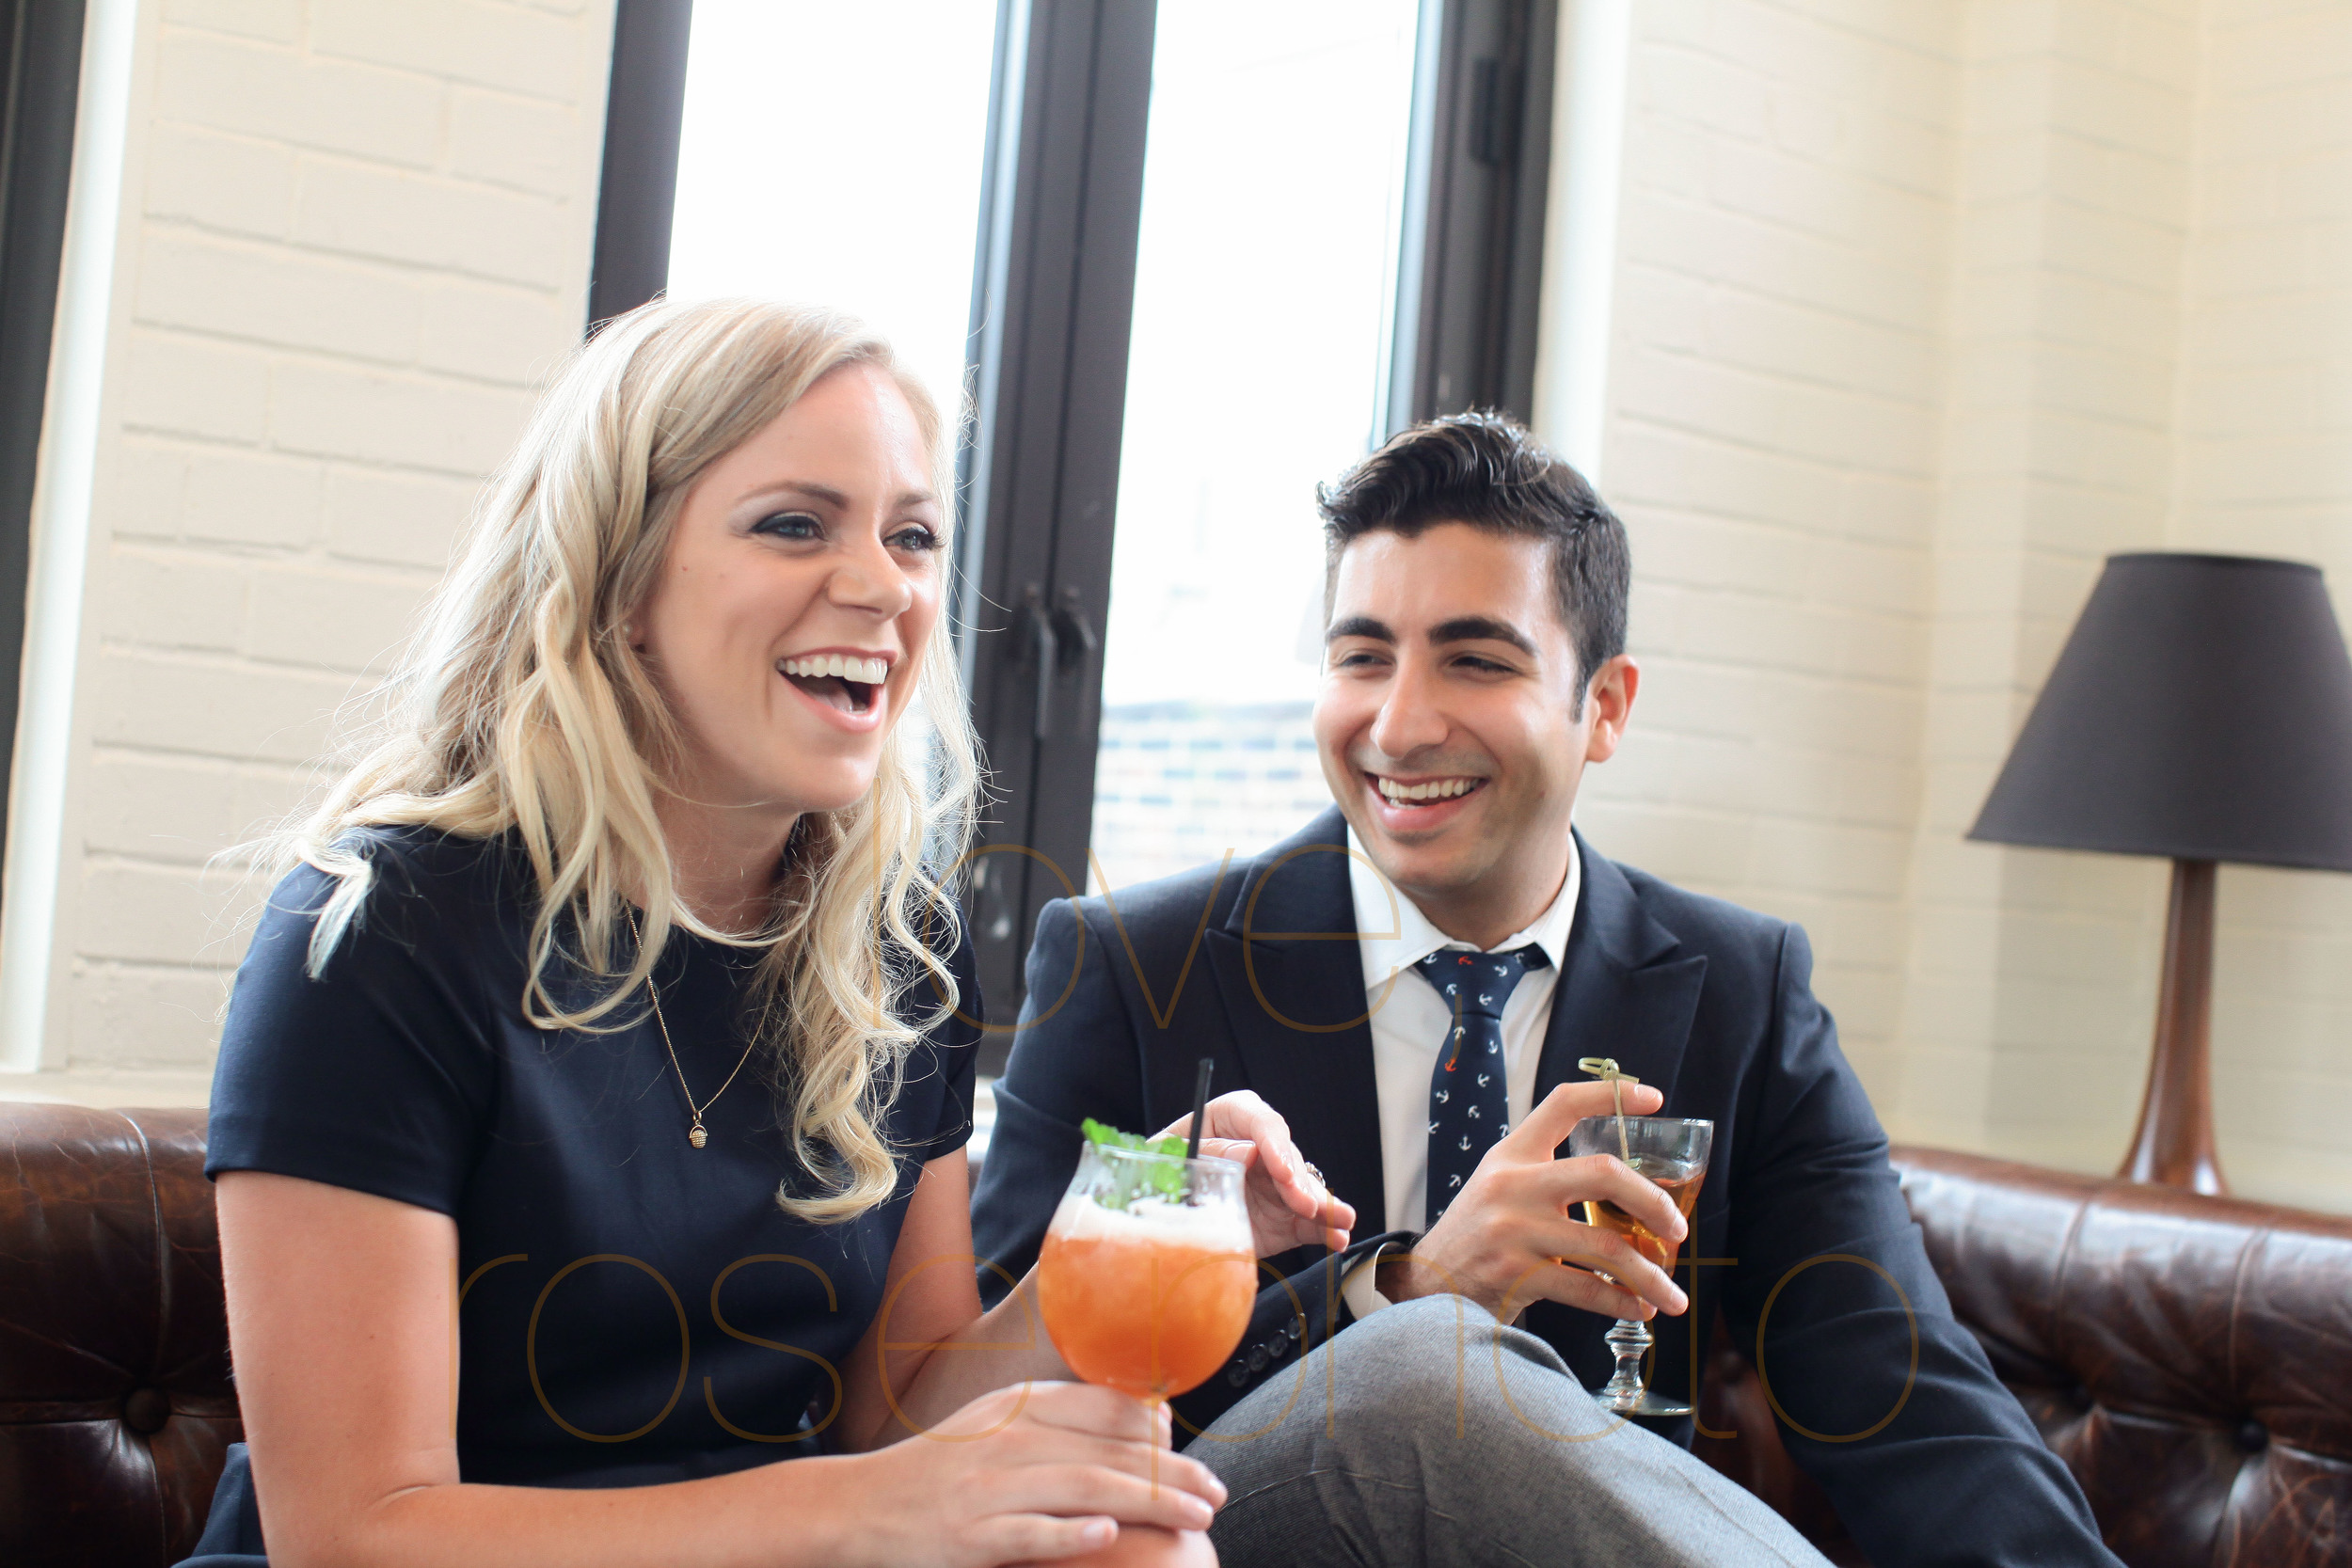 Amy + Ammar engagment shoot downtown drumbar magnificante mile chicago river wedding photographer-002.jpg